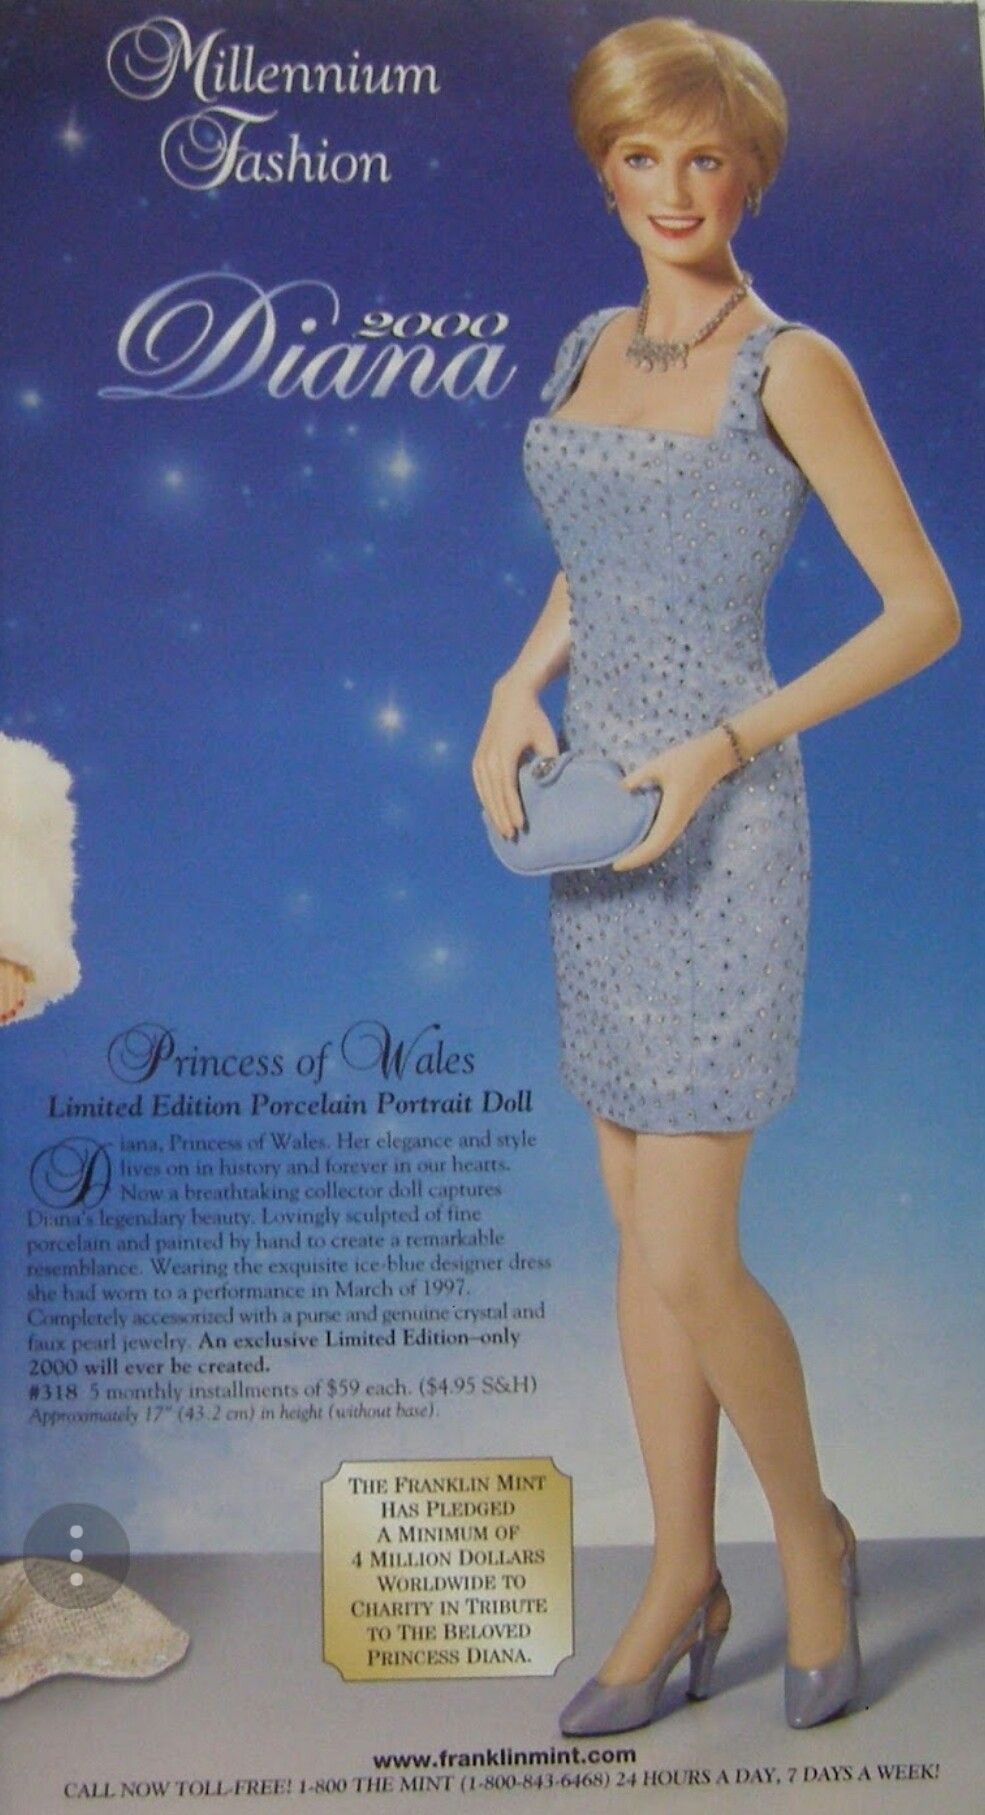 The History of Fashion: Most Important Style Moments of the 20th Millennium fashion 2000 diana